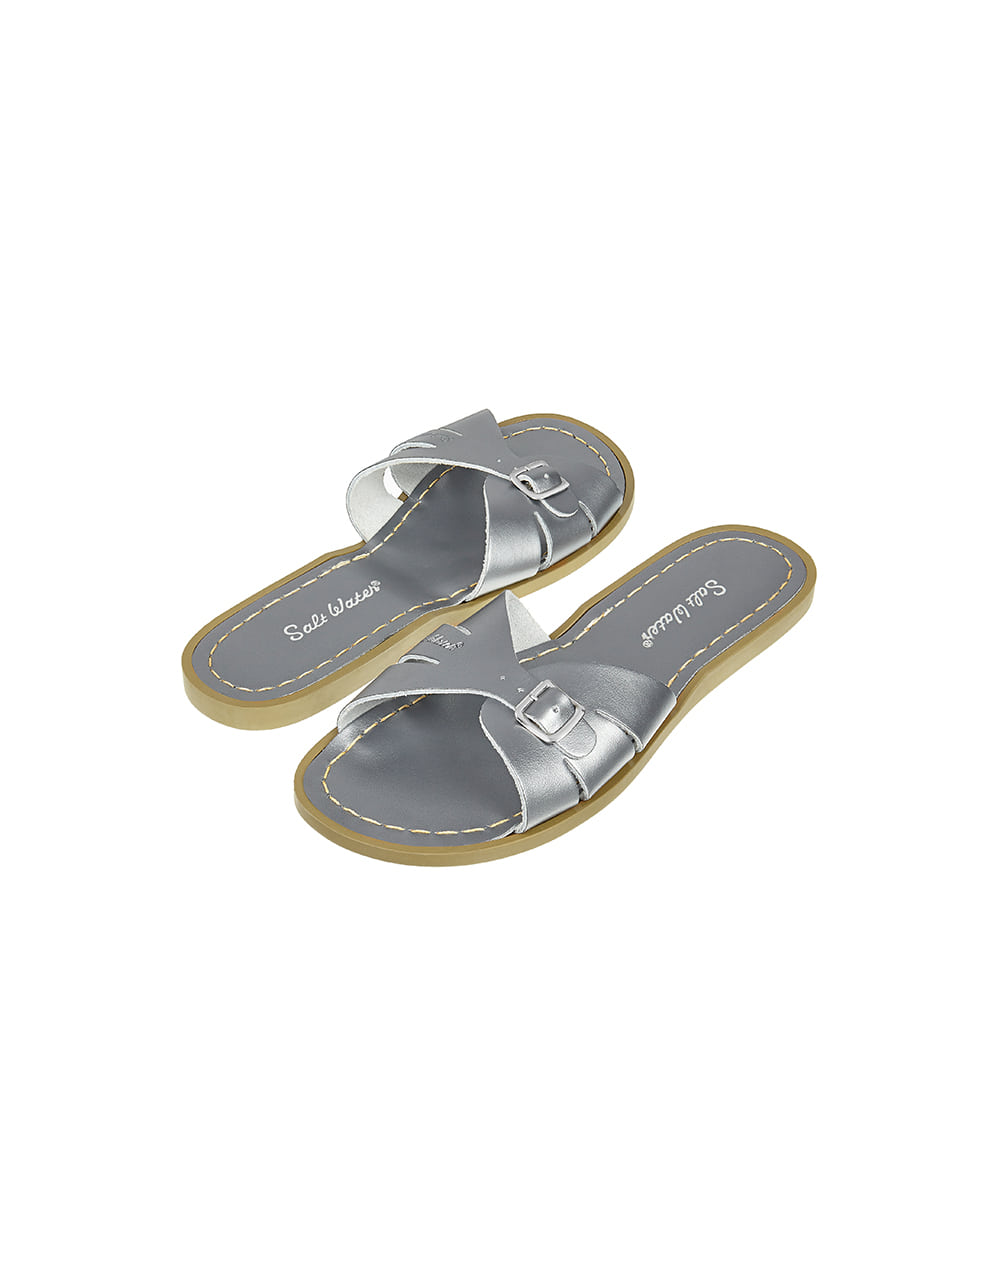 SALT-WATER SANDAL